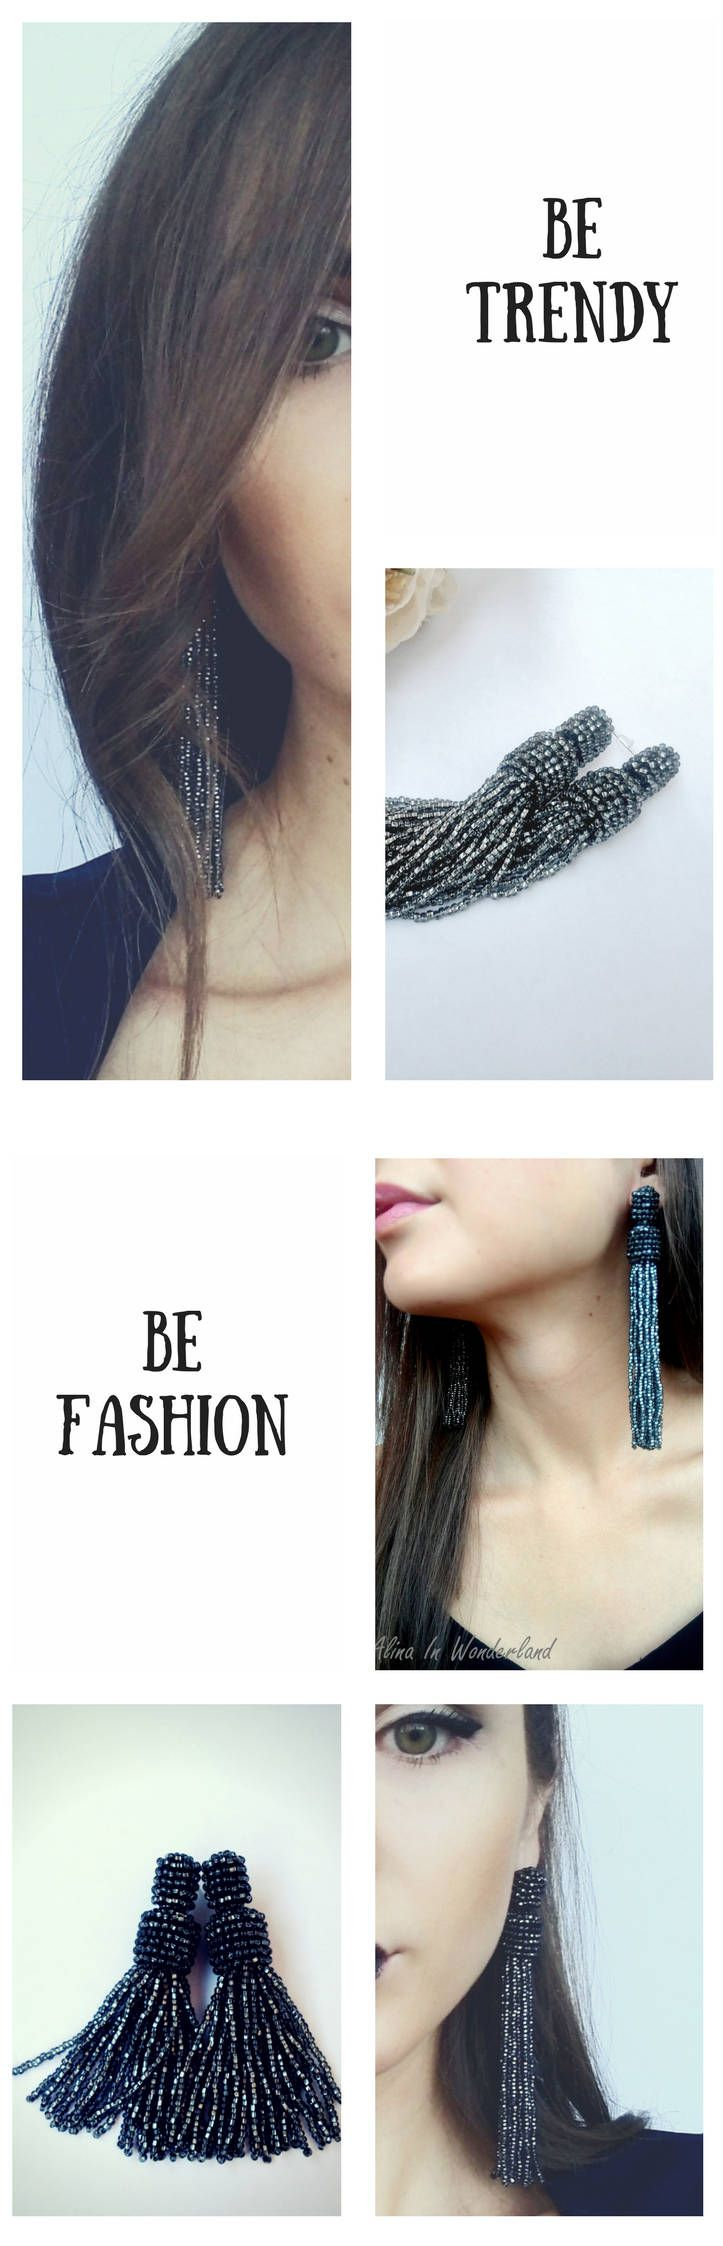 Trends 2018 Best earrings for PROM, sparkle tassel earrings http://etsy.me/2nss4xV #etsy #earrings